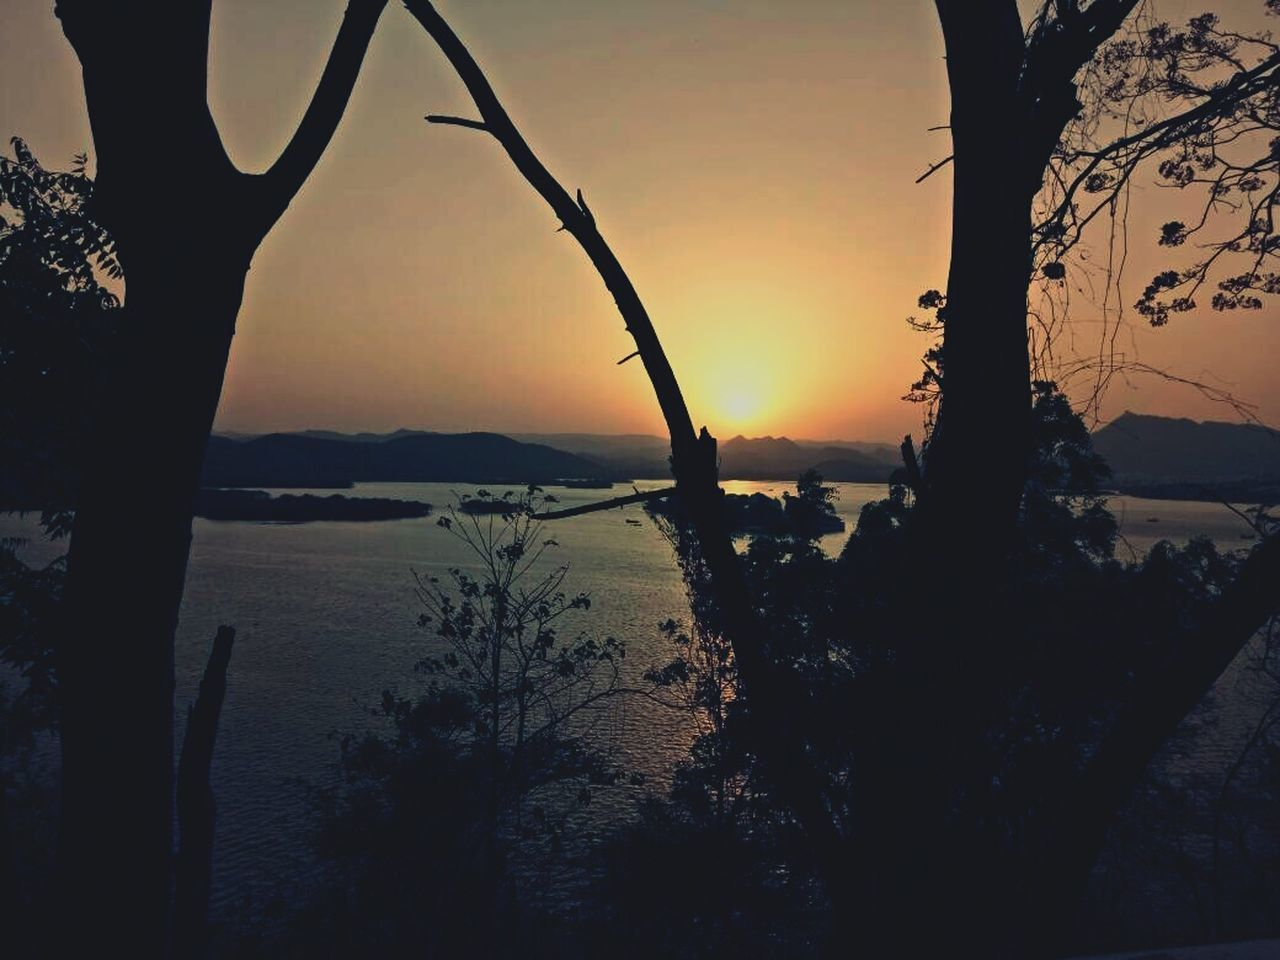 sunset, tree, silhouette, nature, beauty in nature, branch, scenics, sea, tranquil scene, water, no people, tranquility, tree trunk, outdoors, sky, mountain, bare tree, foreground, landscape, horizon over water, day